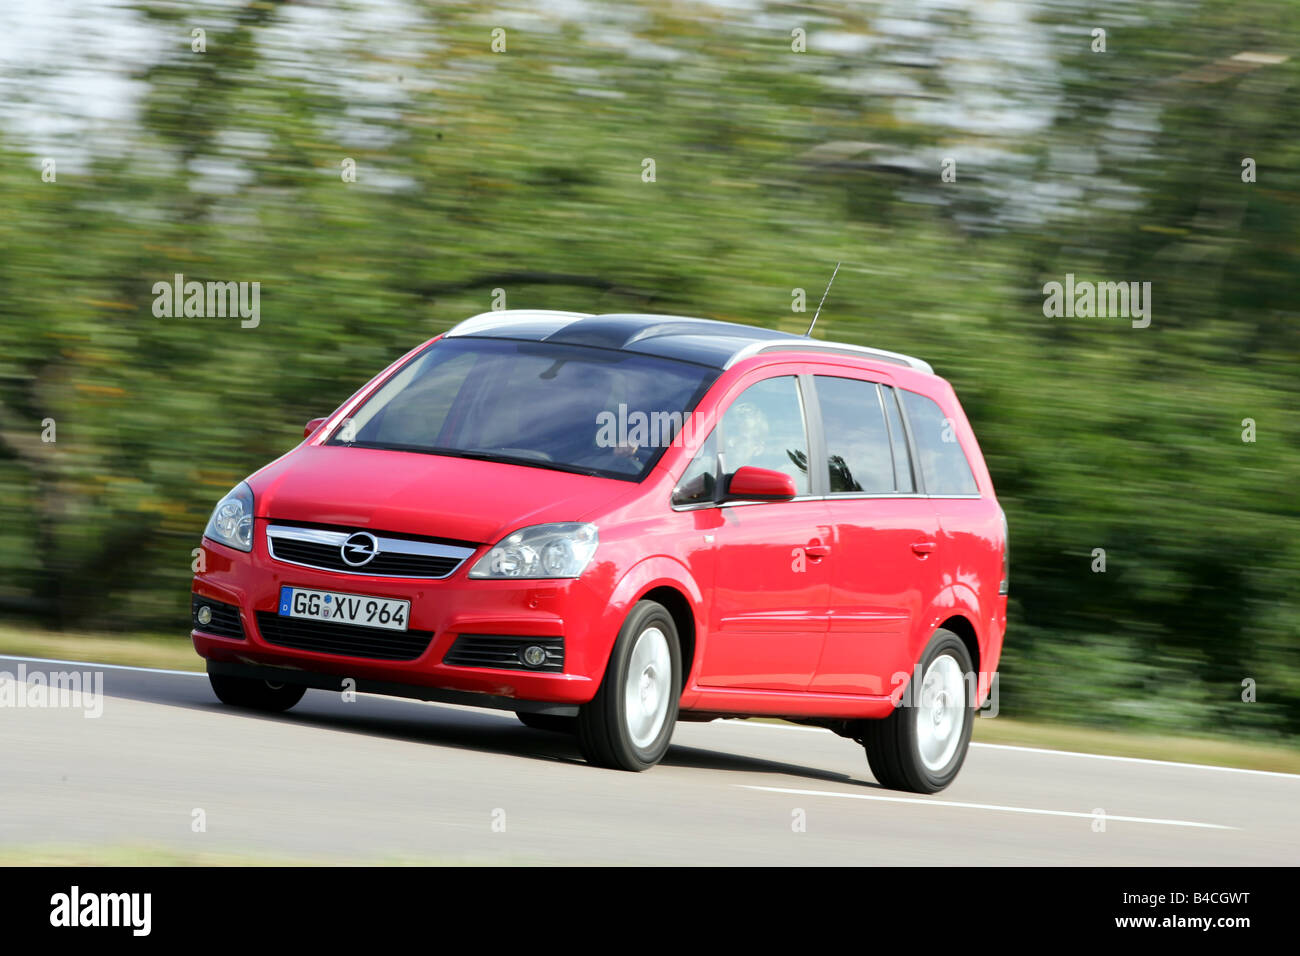 opel zafira stock photos opel zafira stock images alamy. Black Bedroom Furniture Sets. Home Design Ideas